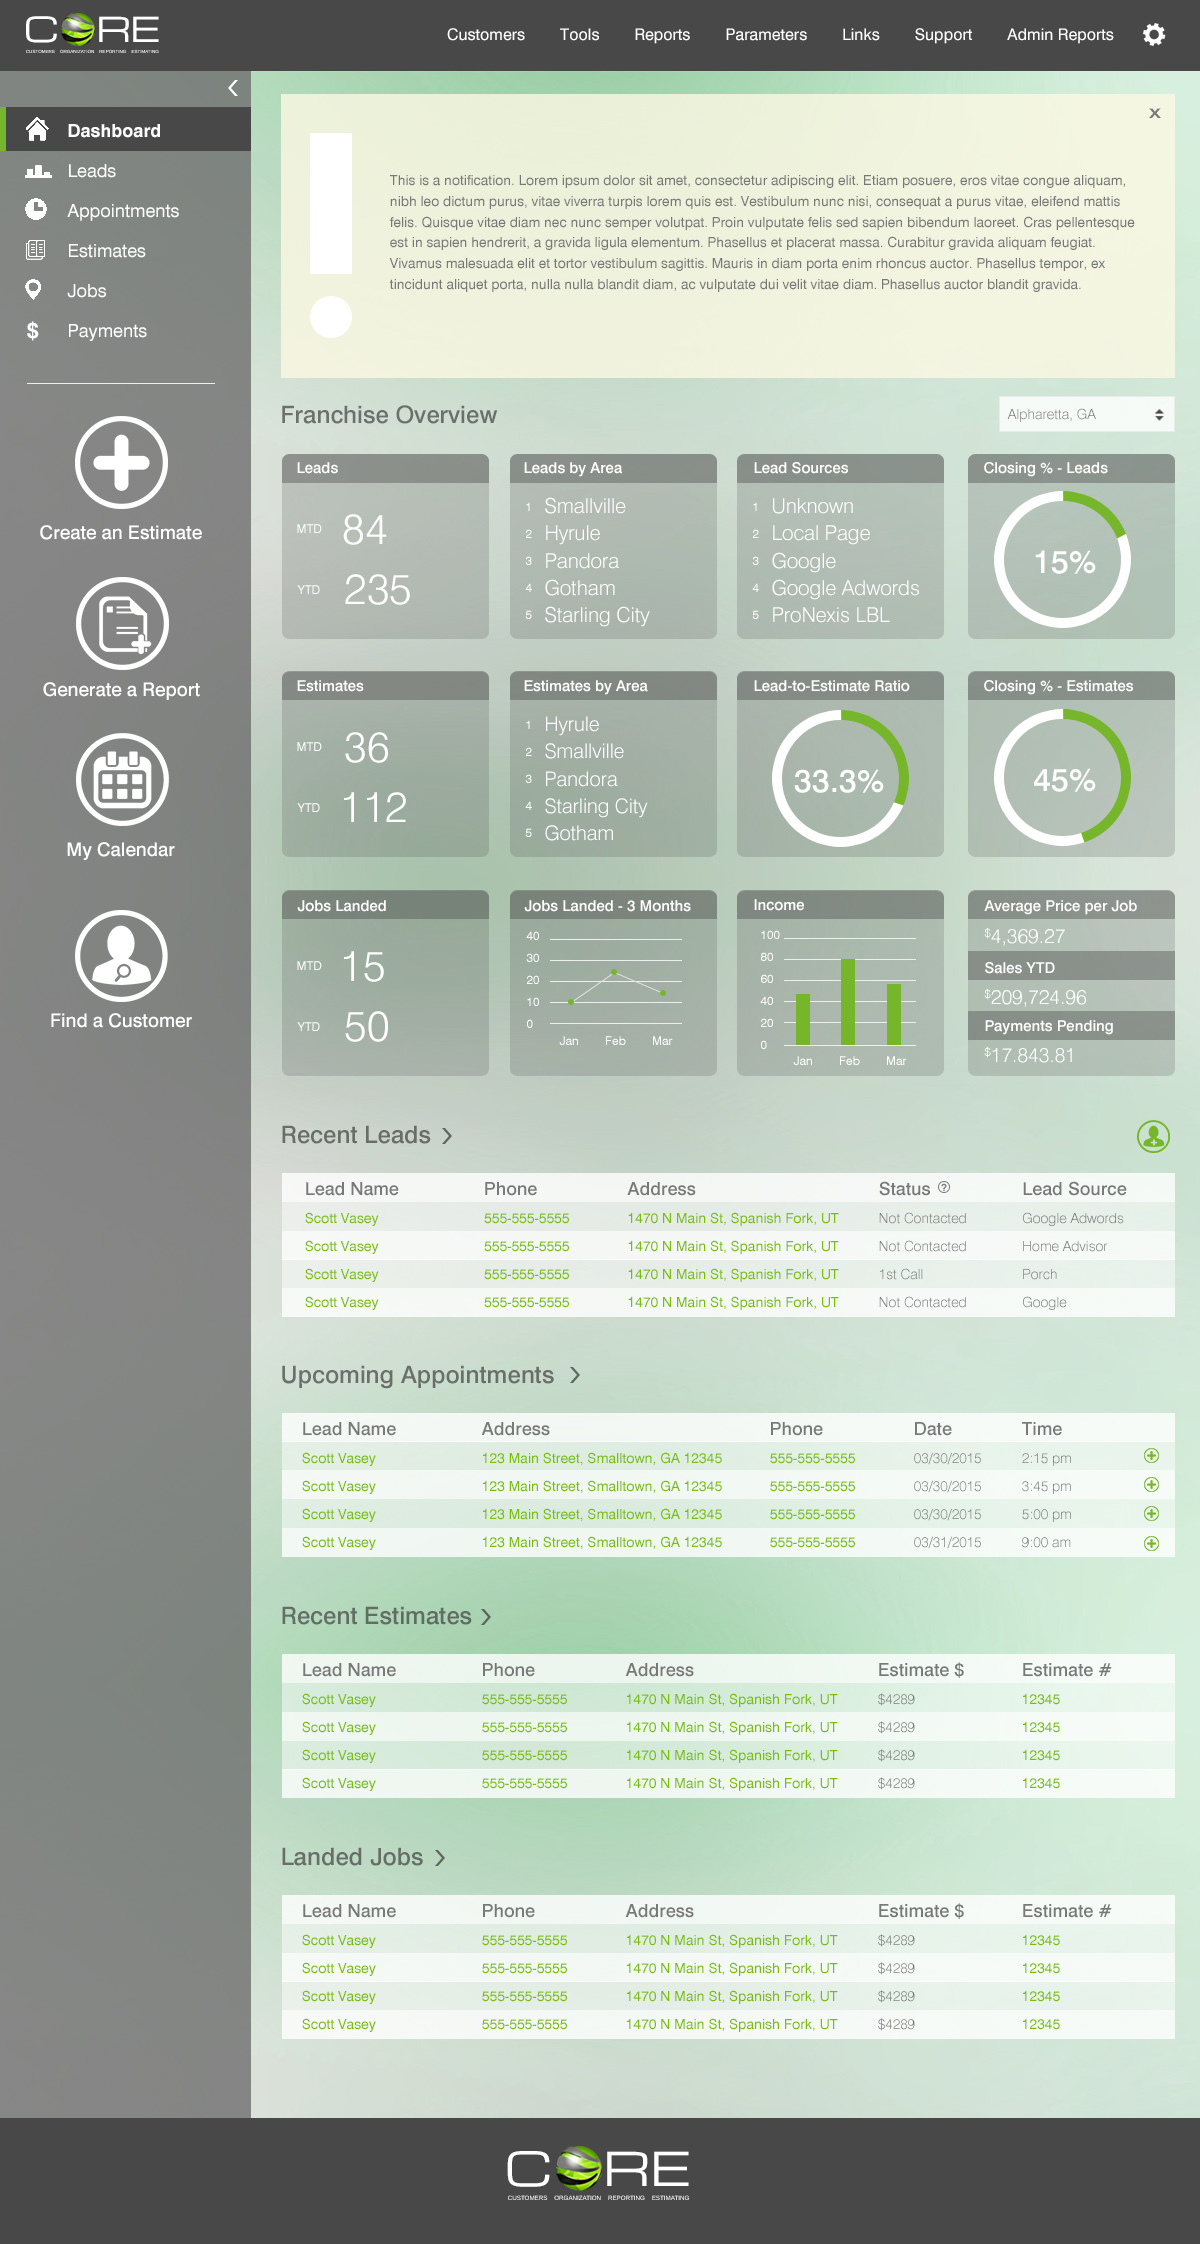 CORE 2.0 Dashboard